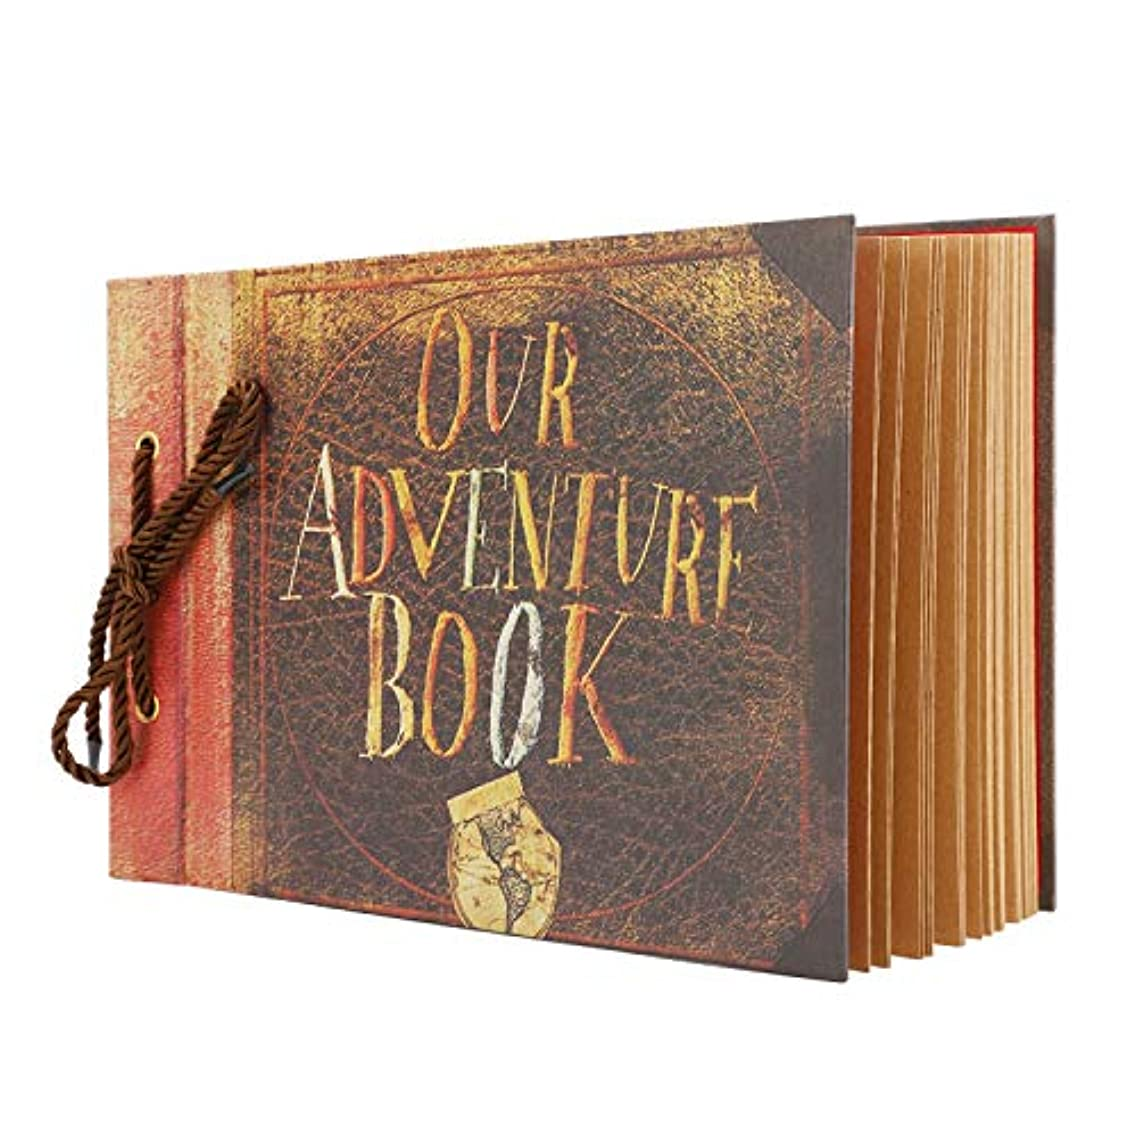 Our Adventure Book, Scrapbook Albums Anniversary Wedding Travel Handmade Scrap Book 11.6 x 7.5 Inches 40 Sheets 80 Pages DIY Photo Album